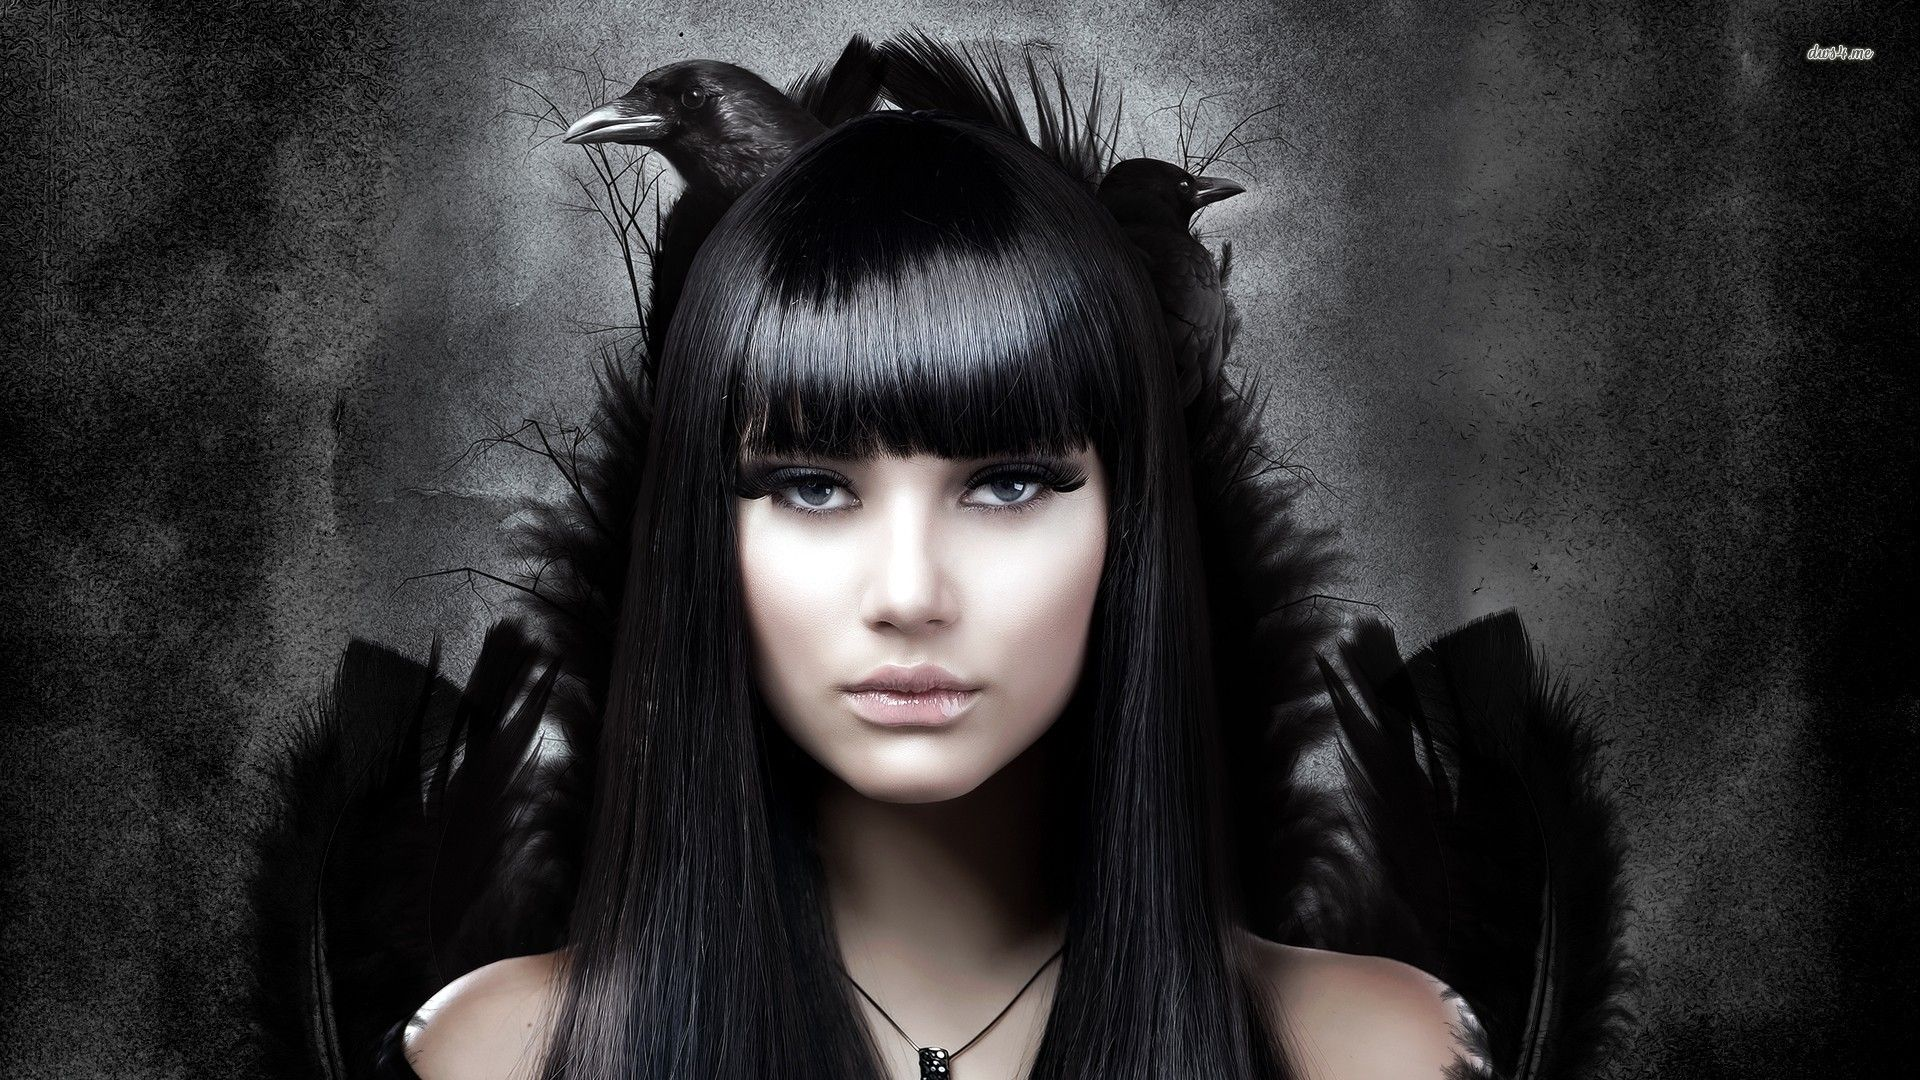 Goth girl with her raven HD wallpaper Gothic hairstyles